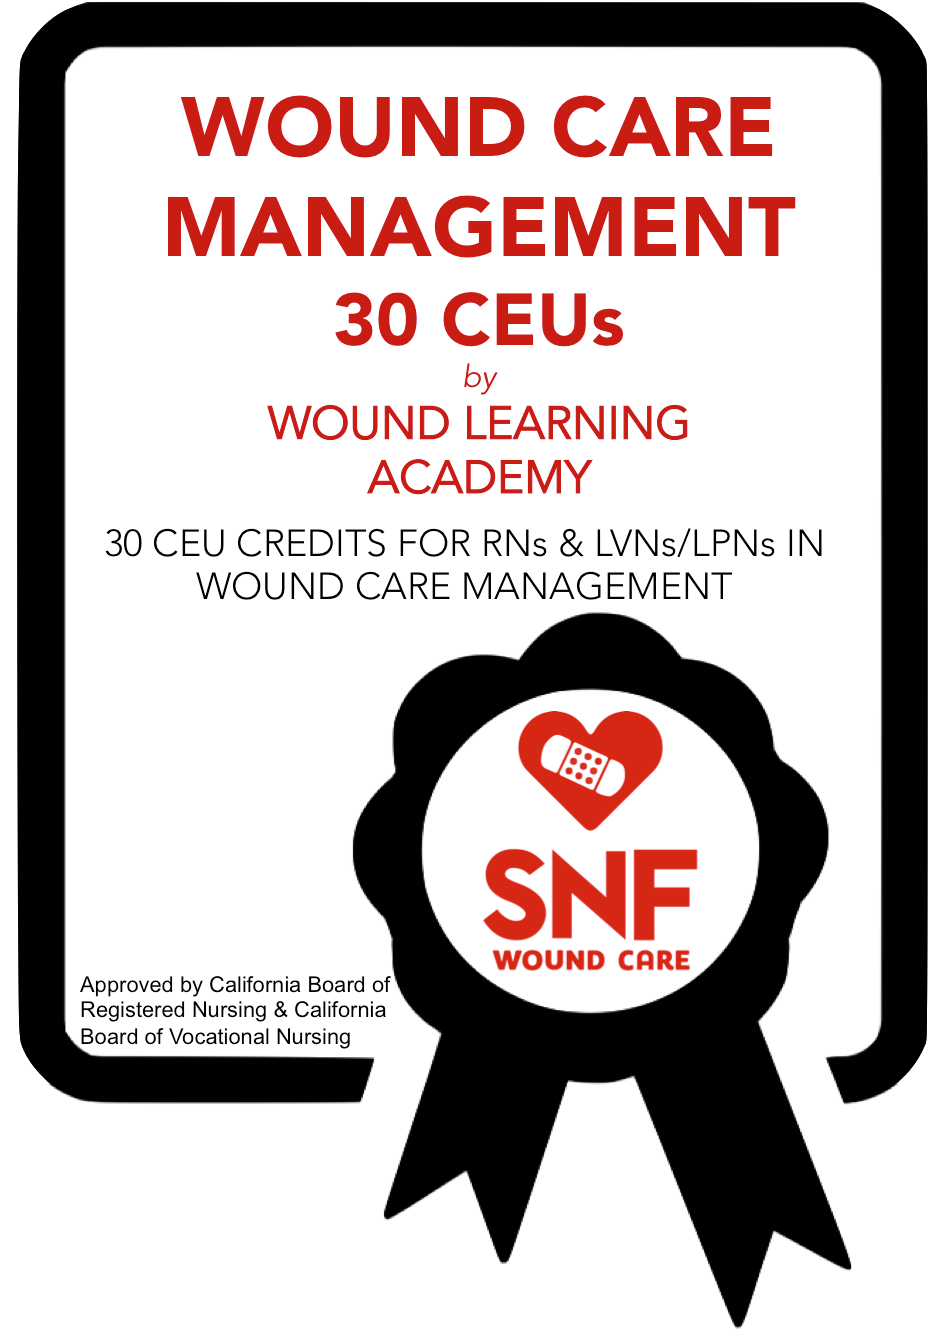 GET 30 CEU CREDITS IN WOUND CARE MANAGEMENT